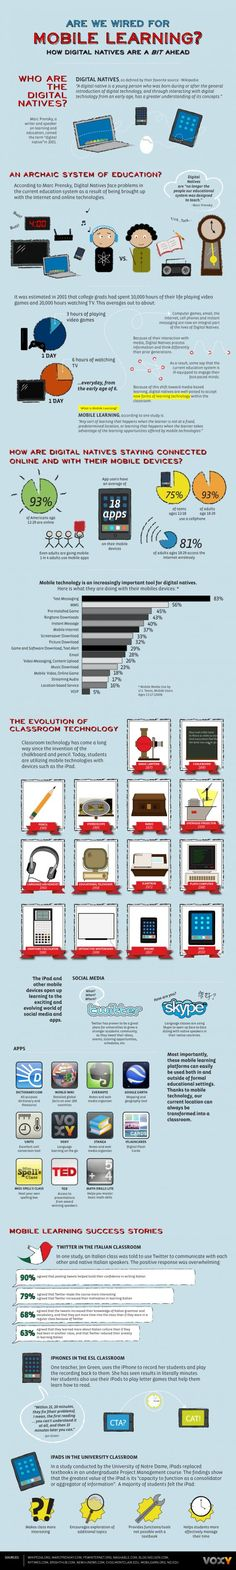 Mobile-Learning-Infographic-How-Digital-Natives-Are-A-Bit-A-Head